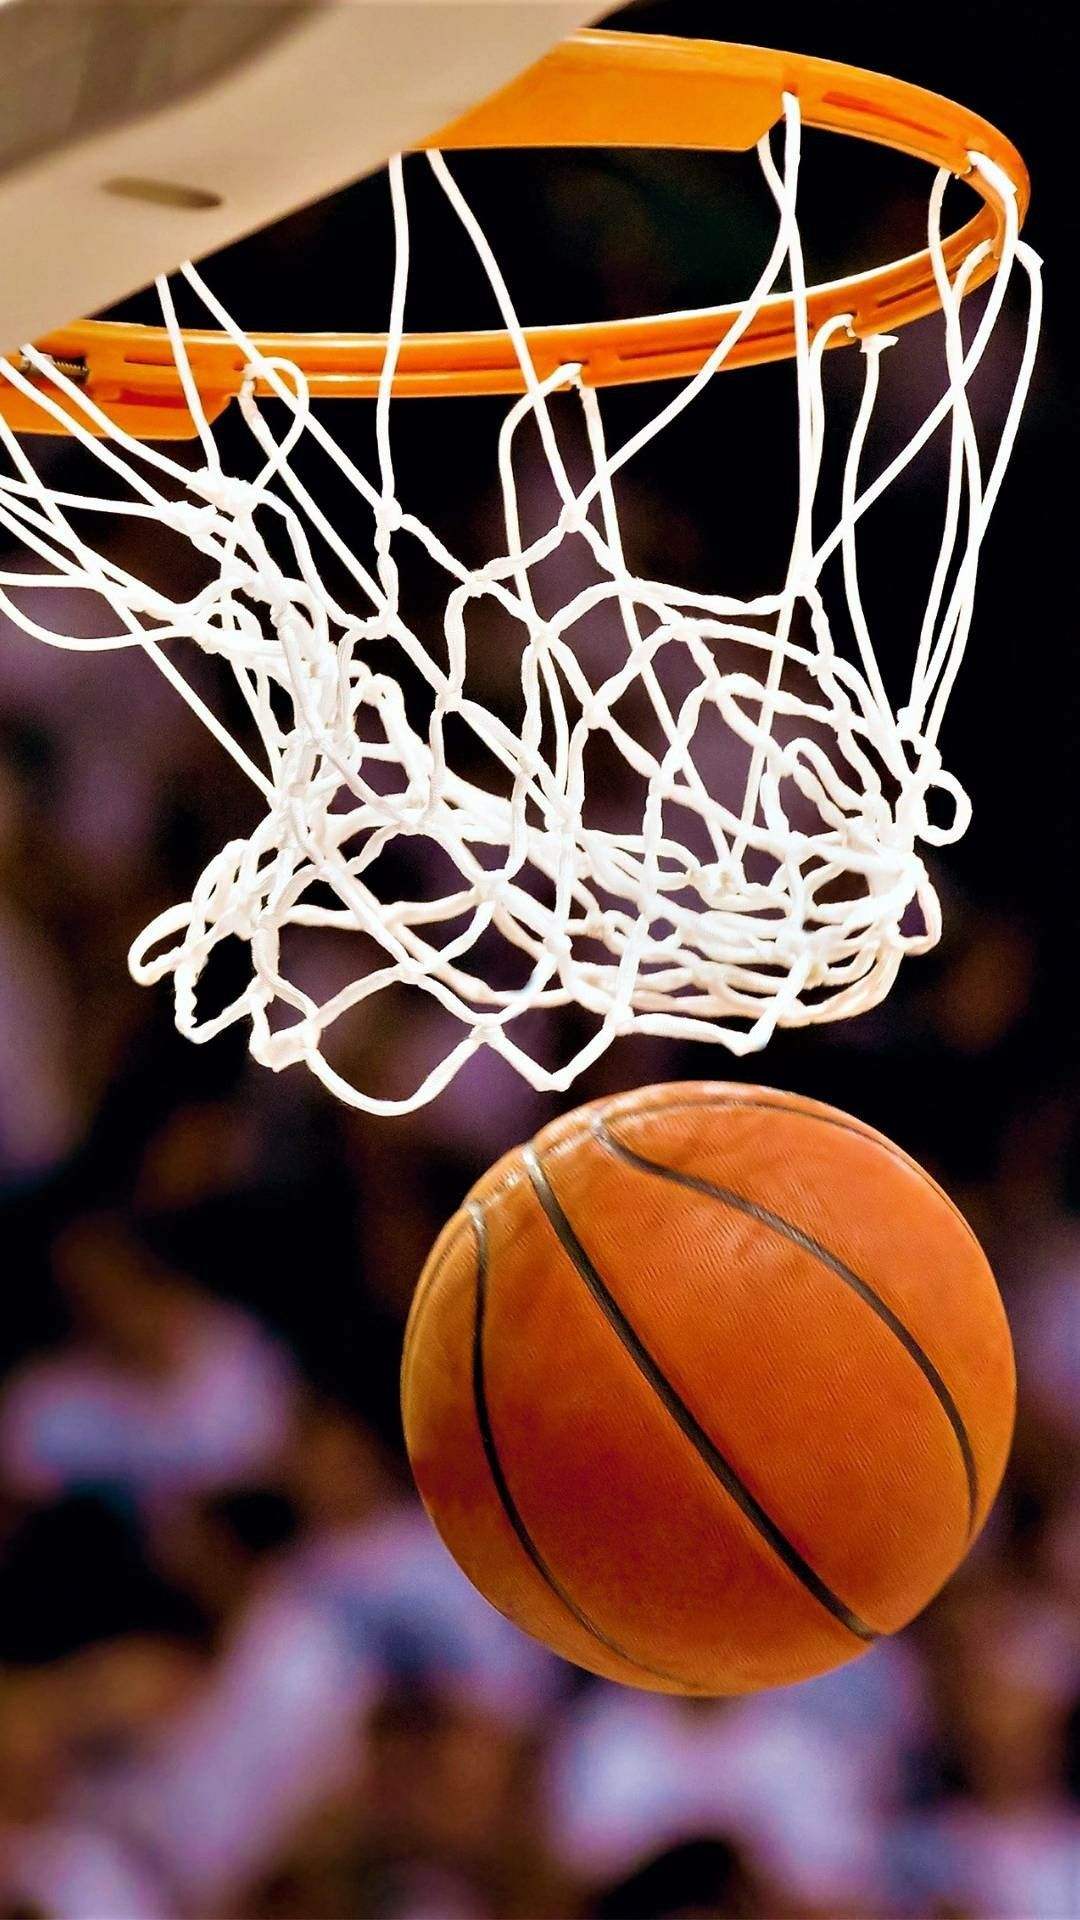 Cool Basketball In 2020 Cool Basketball Wallpapers Basketball Hoop Basketball Wallpaper